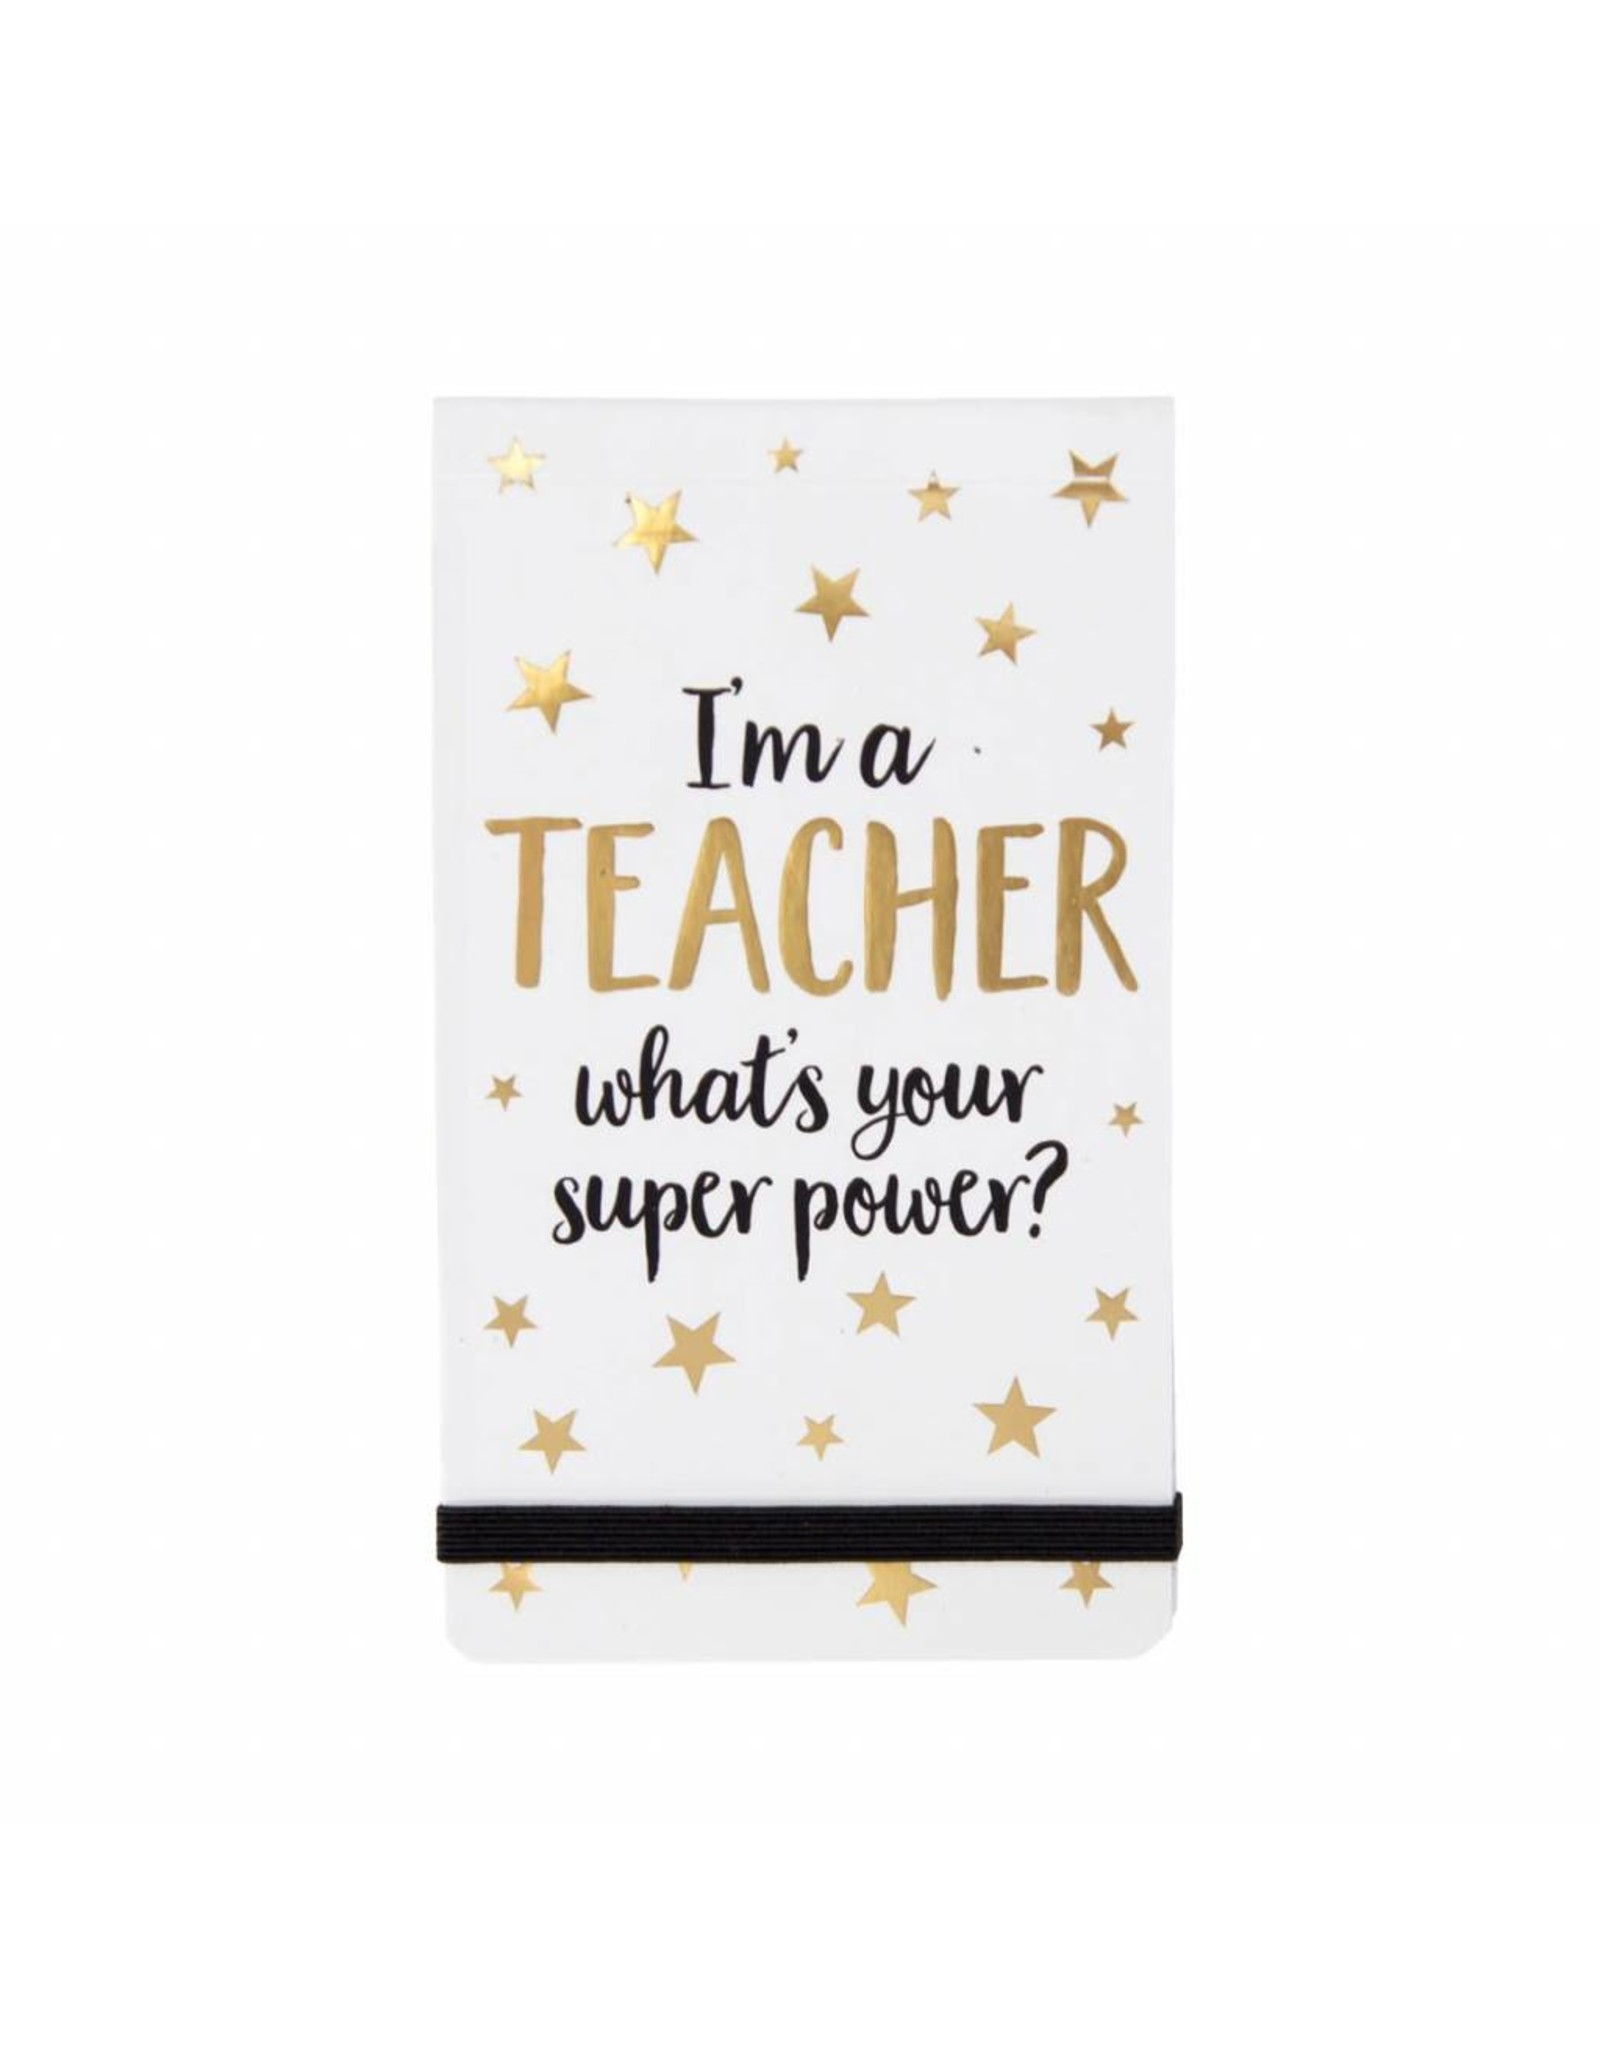 Notaboekje I'm a teacher, what is your superpower?